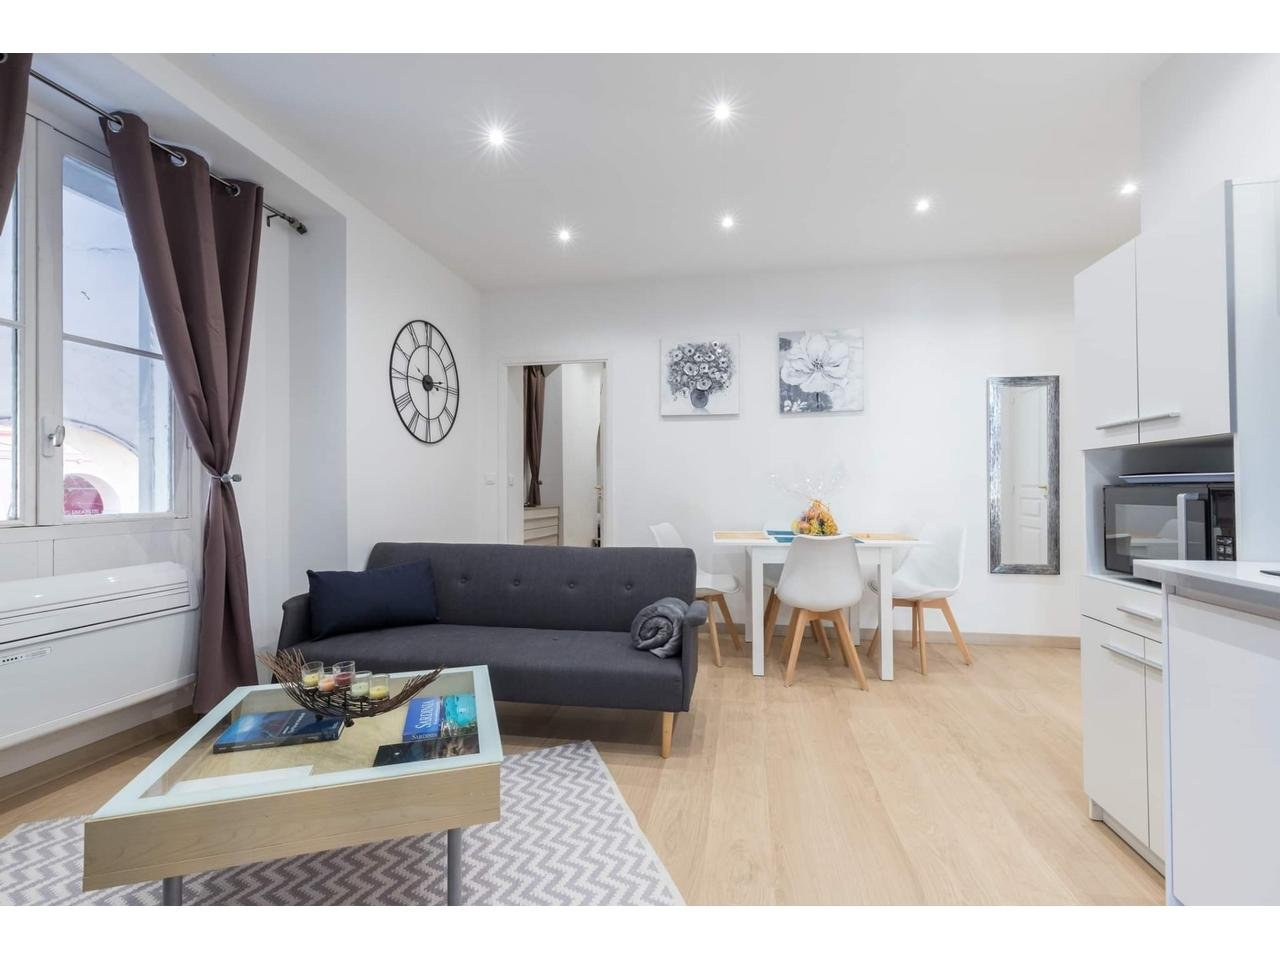 Appartement  2 Rooms 37.06m2  for sale   340000 €